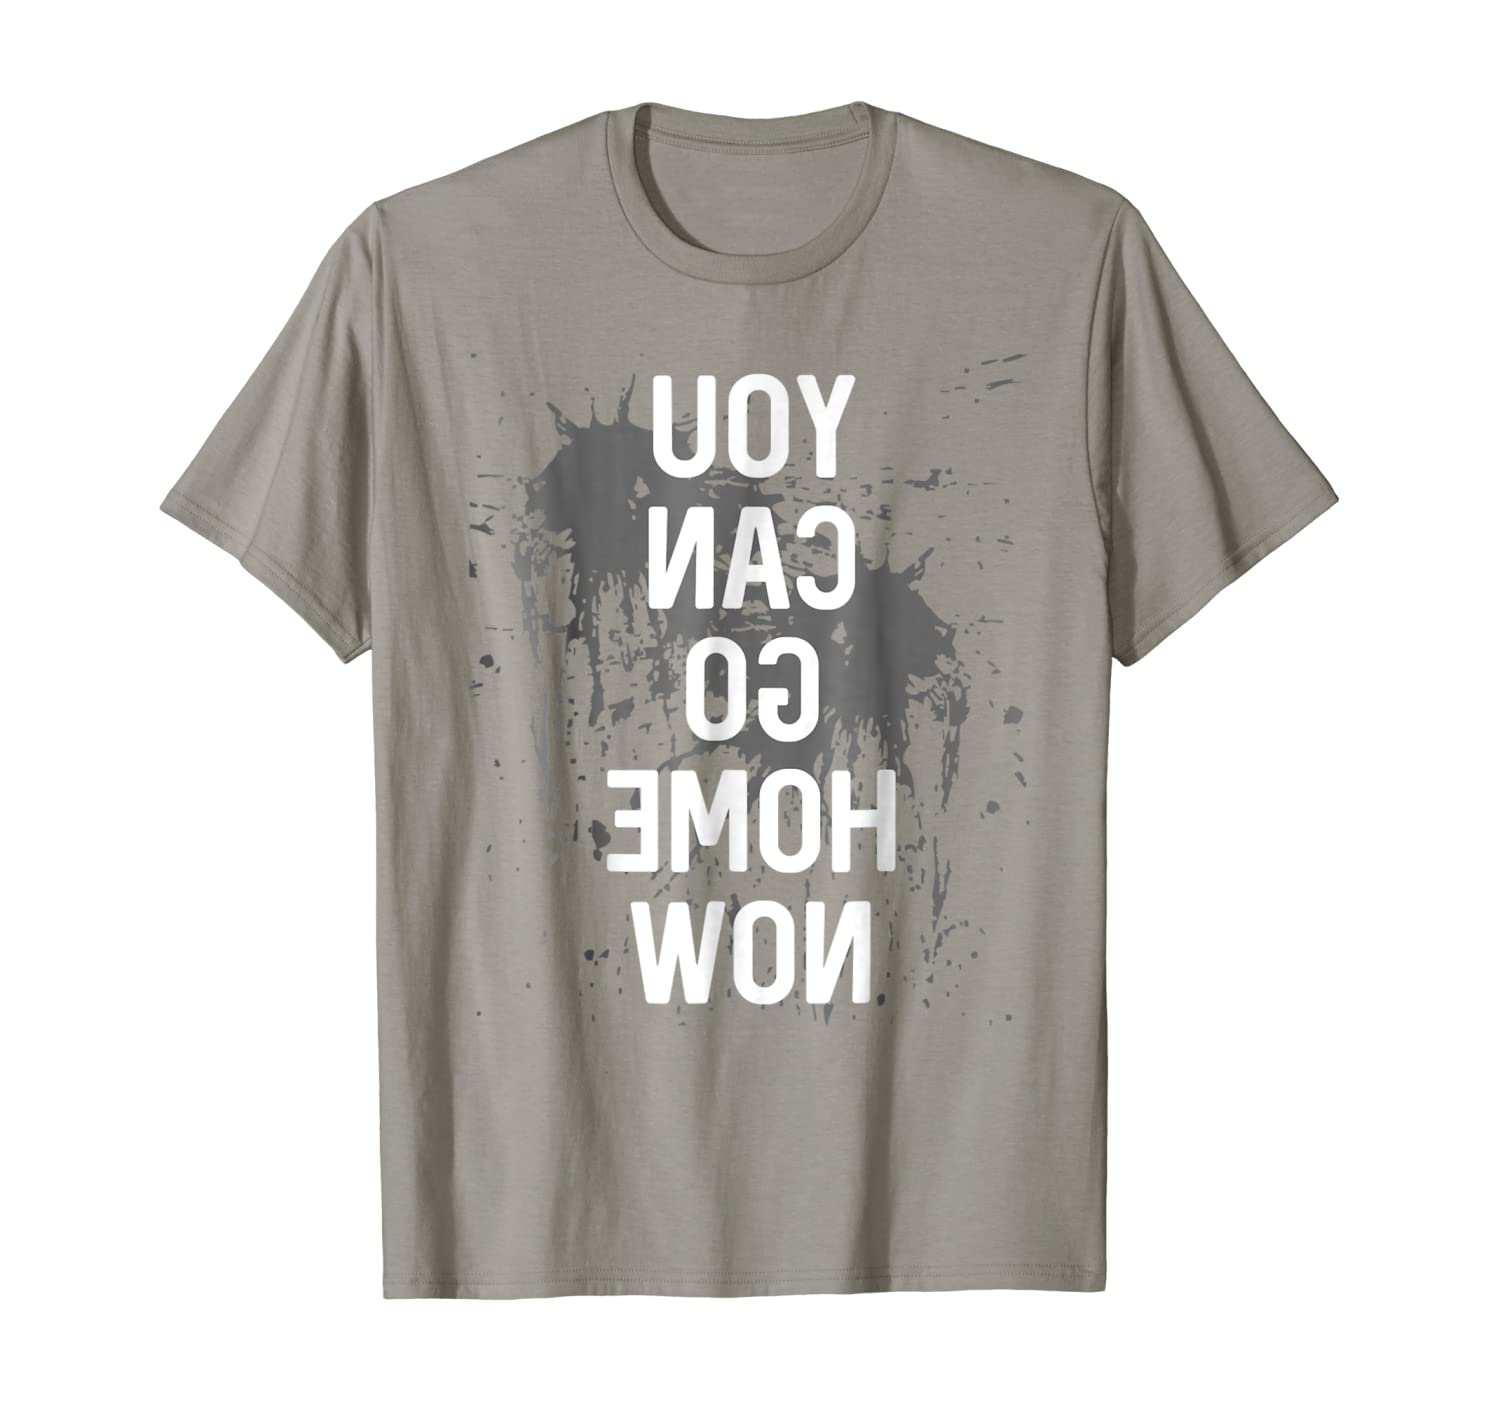 You Can Go Home Now Tshirt for Sweat & Training Funny Gift